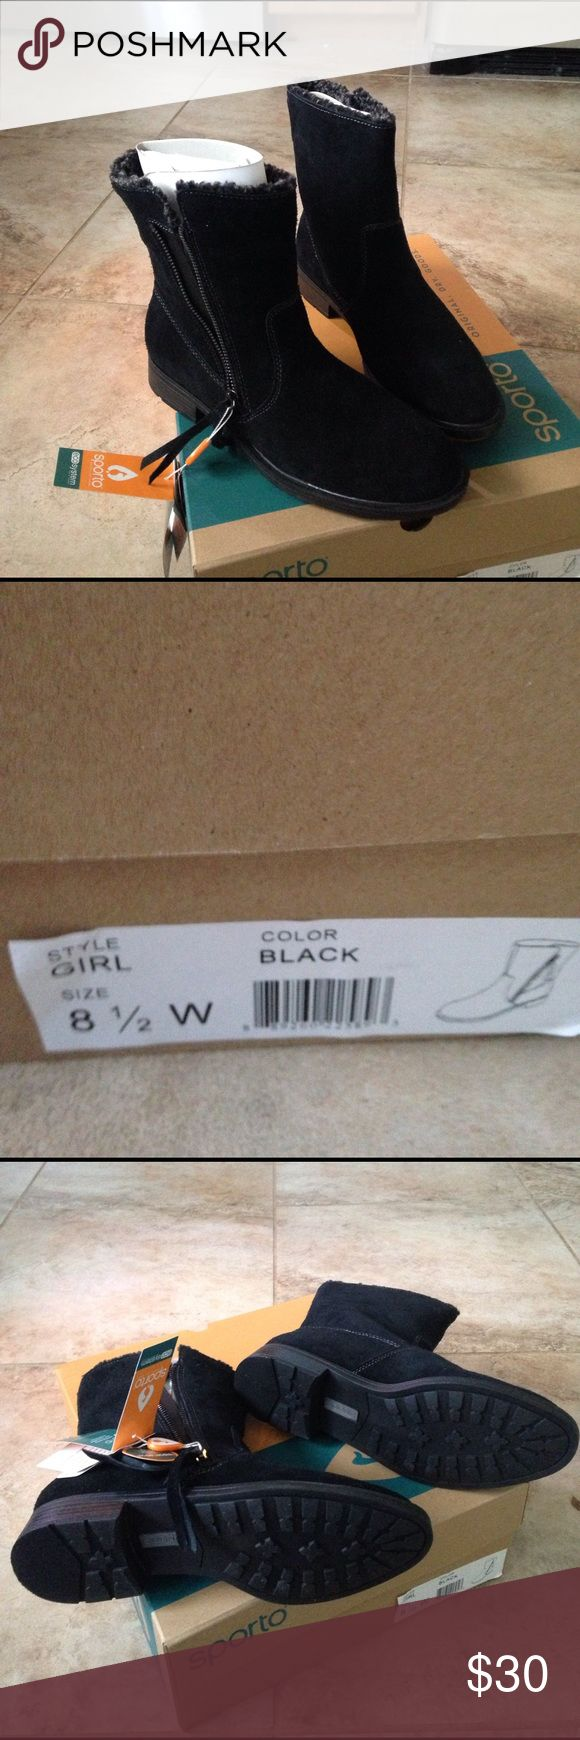 Brand new suede black Sporto boots 8.5wide Brand new size 8.5w Sporto black suede boots. These boots are built to keep your feet warm, and dry. The bottom the shoe is built to grip instead of slide. Sporto Shoes Winter & Rain Boots